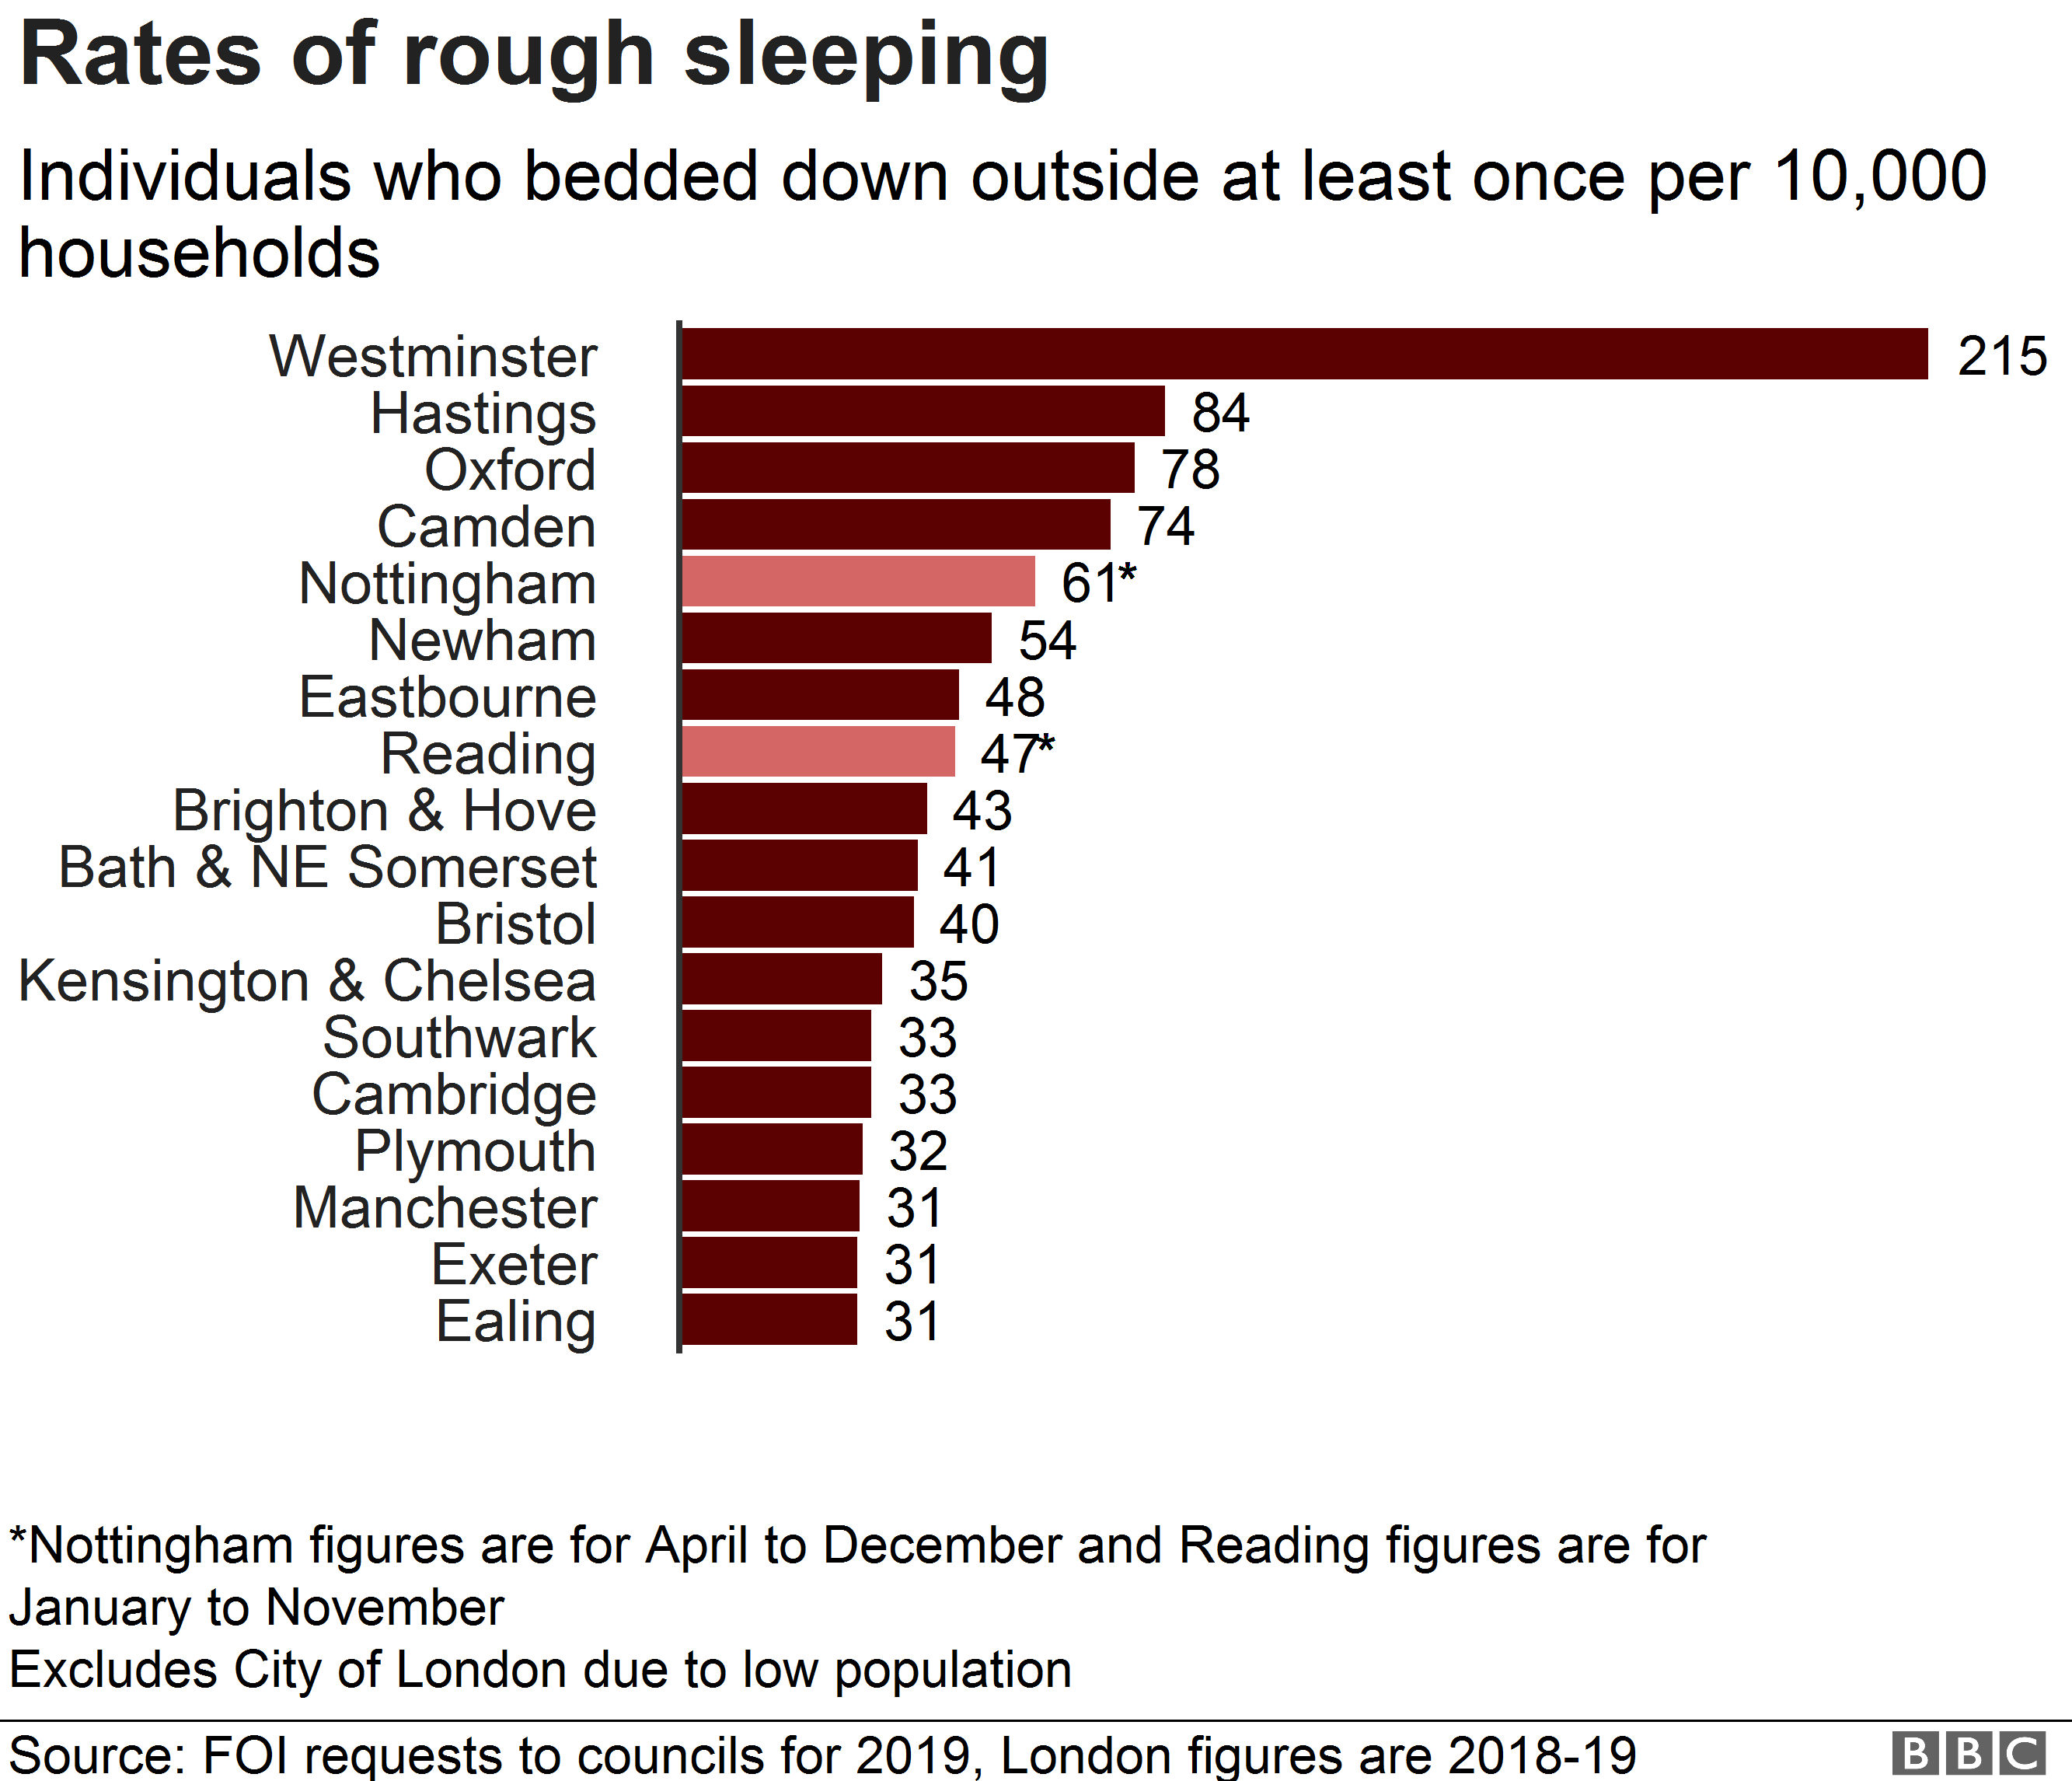 Chart showing rough sleeping rates